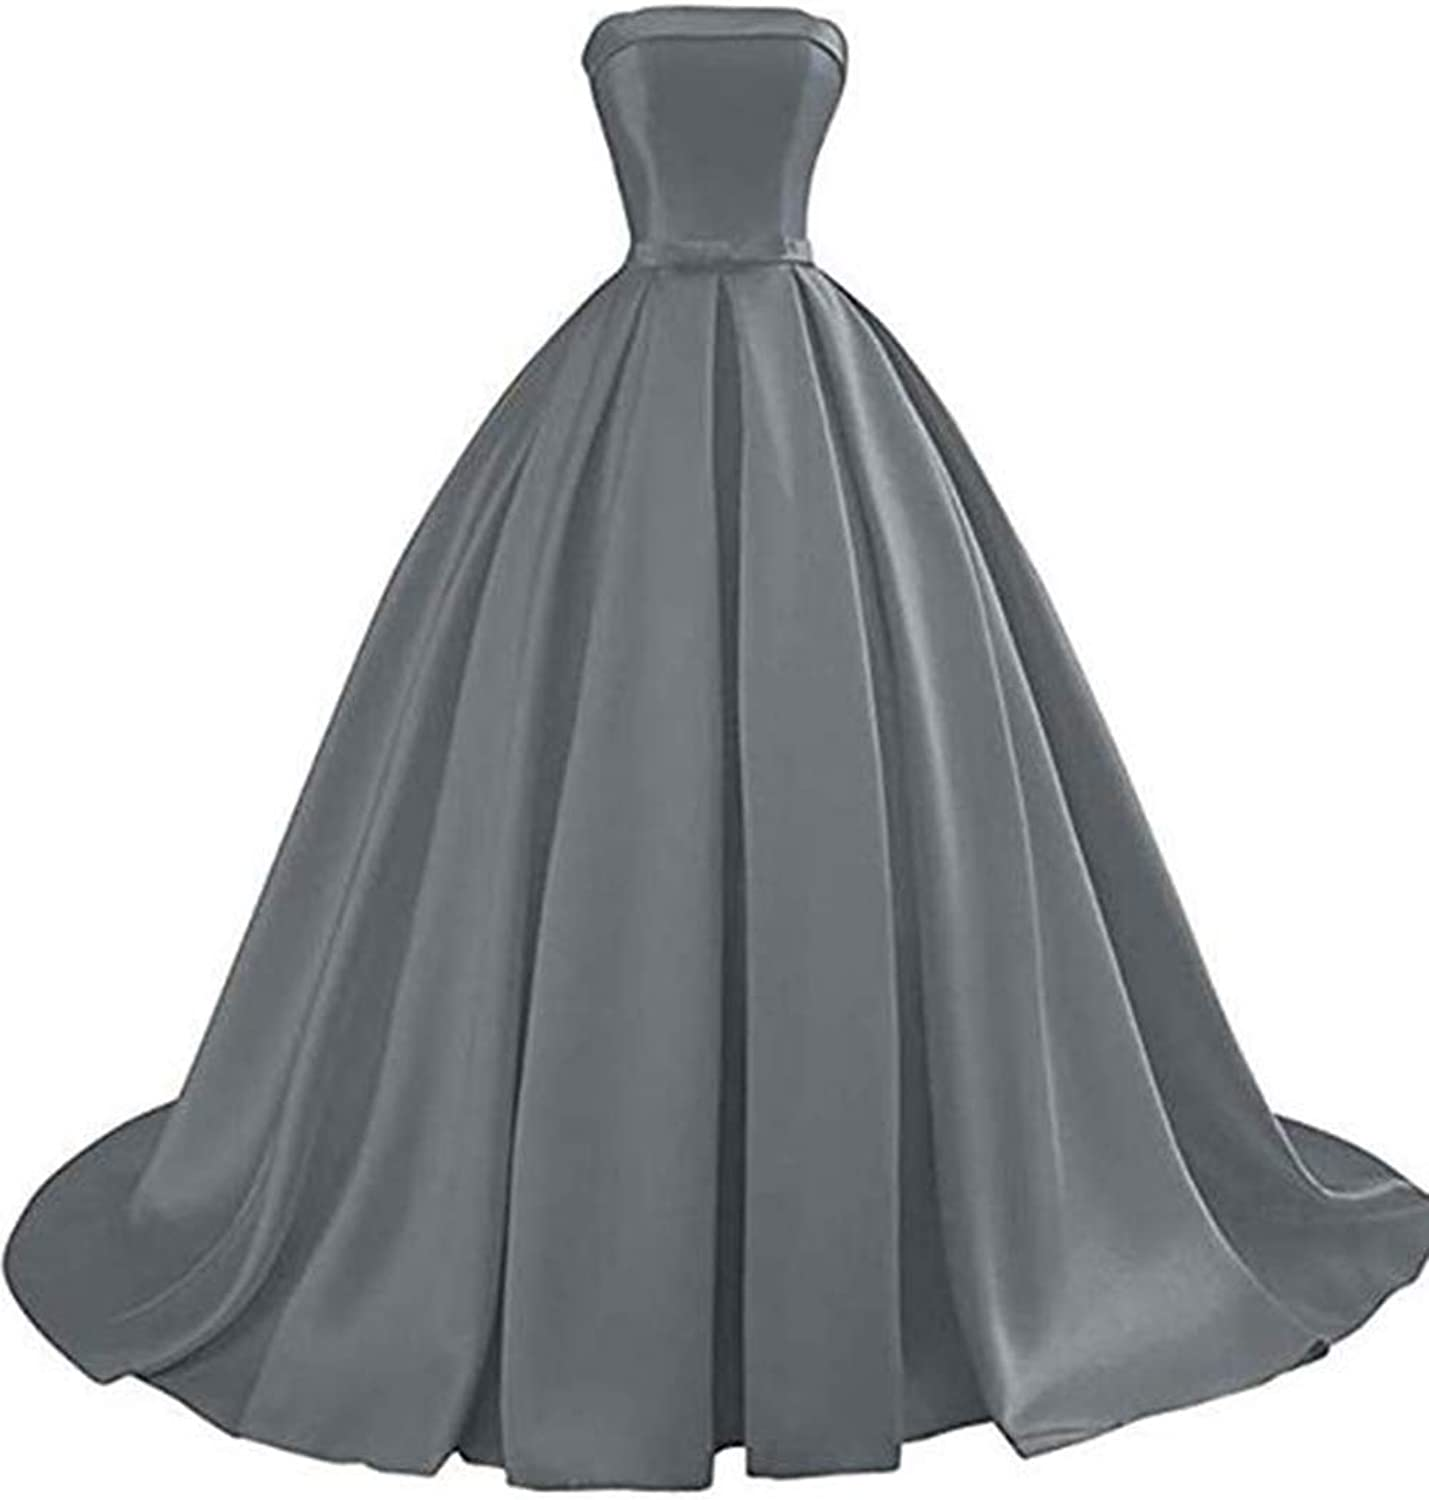 Alilith.Z Sexy Strapless Satin Prom Dresses Ball Gown Formal Evening Dresses Party Gowns for Women with Bowknot Belt